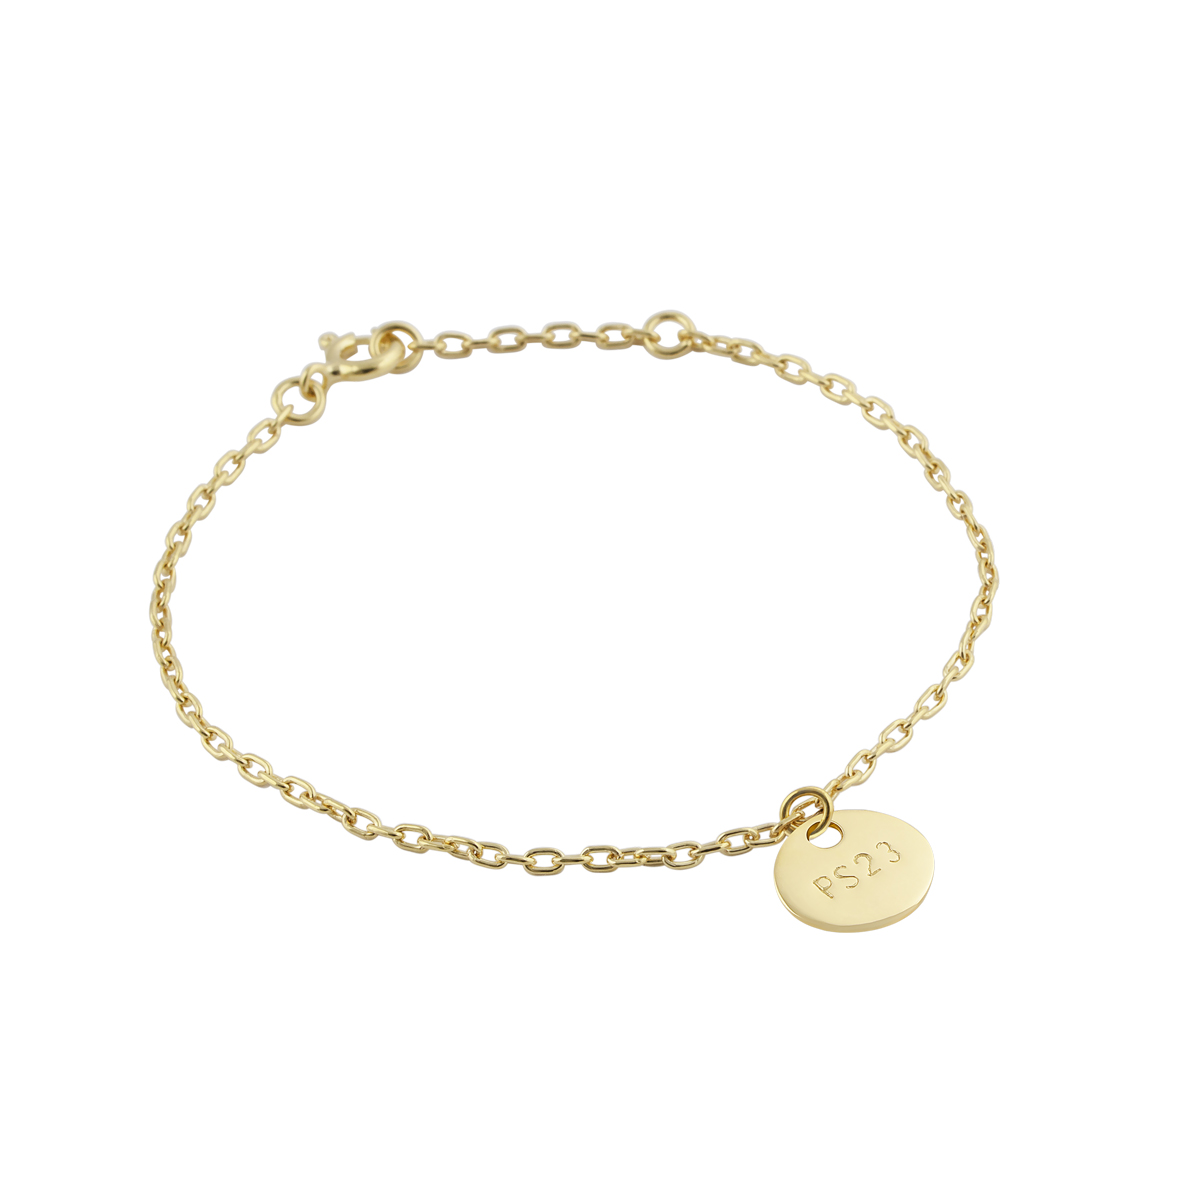 GOLDEN BRONZE COIN BRACELET in the group SHOP / BRACELETS at EMMA ISRAELSSON (brace001b)